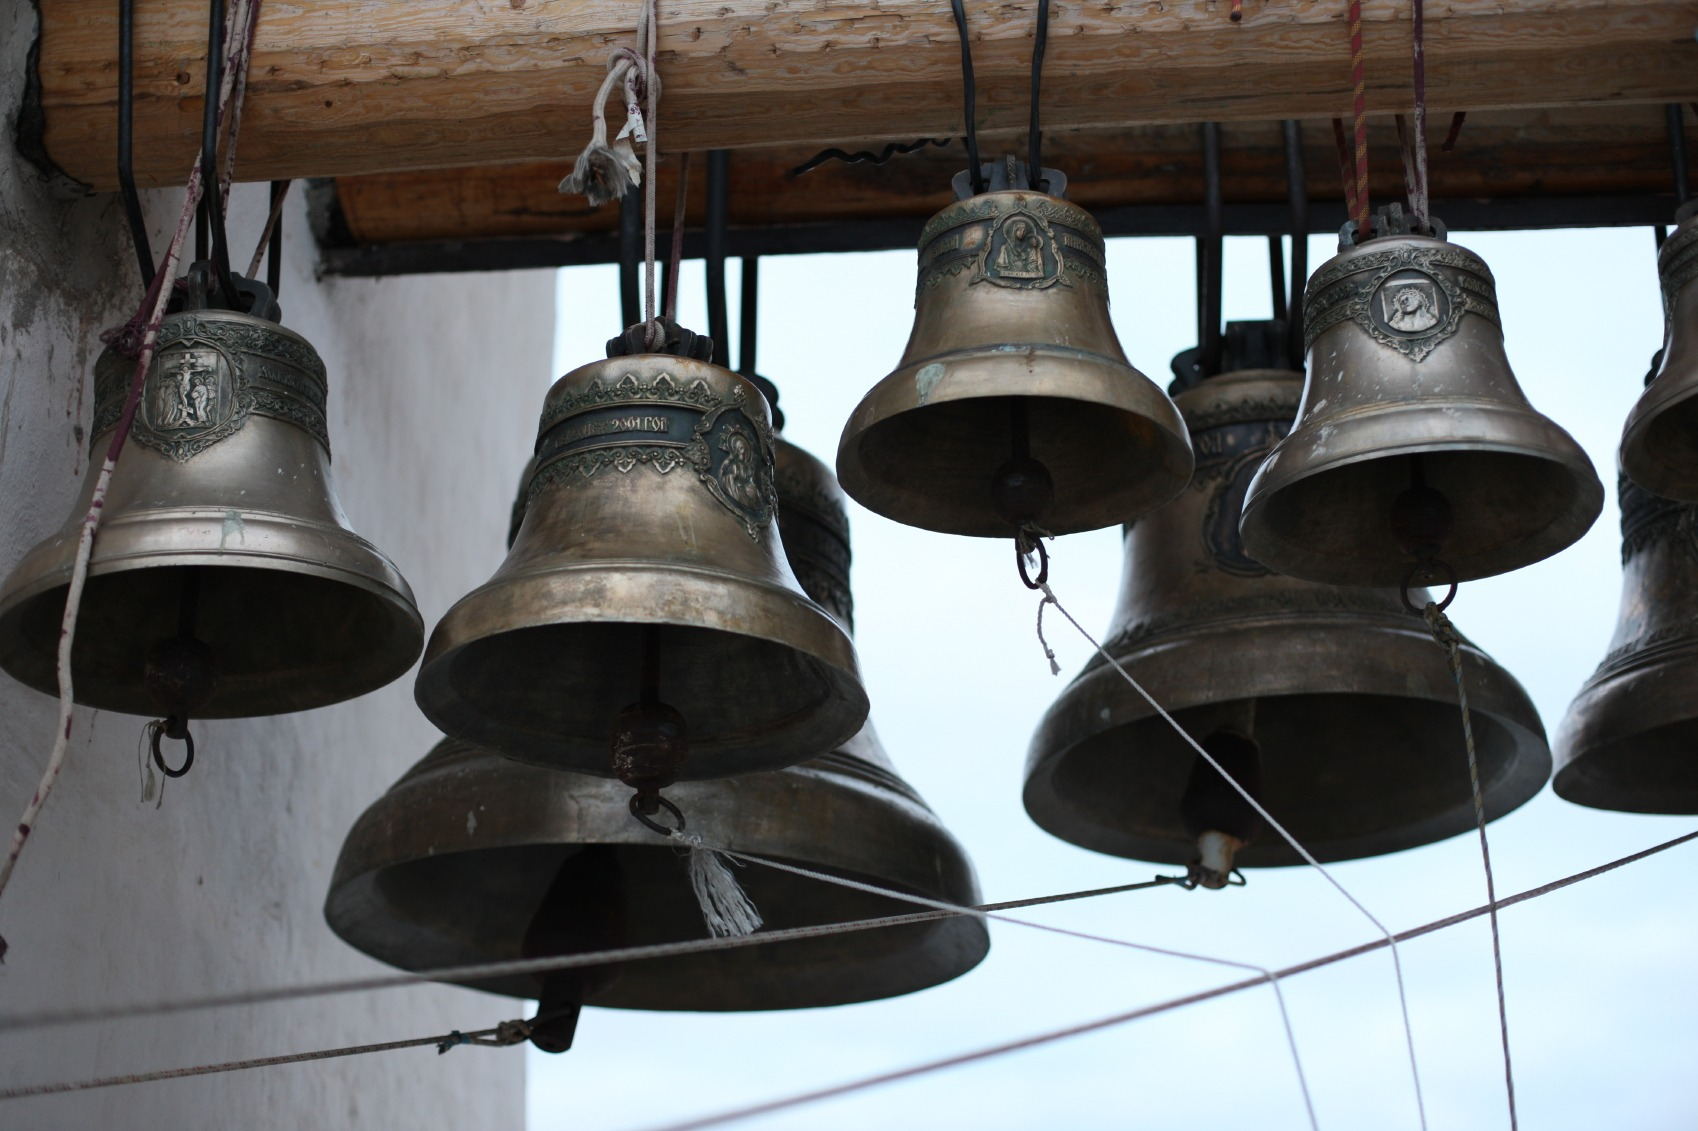 Church Bell Economics